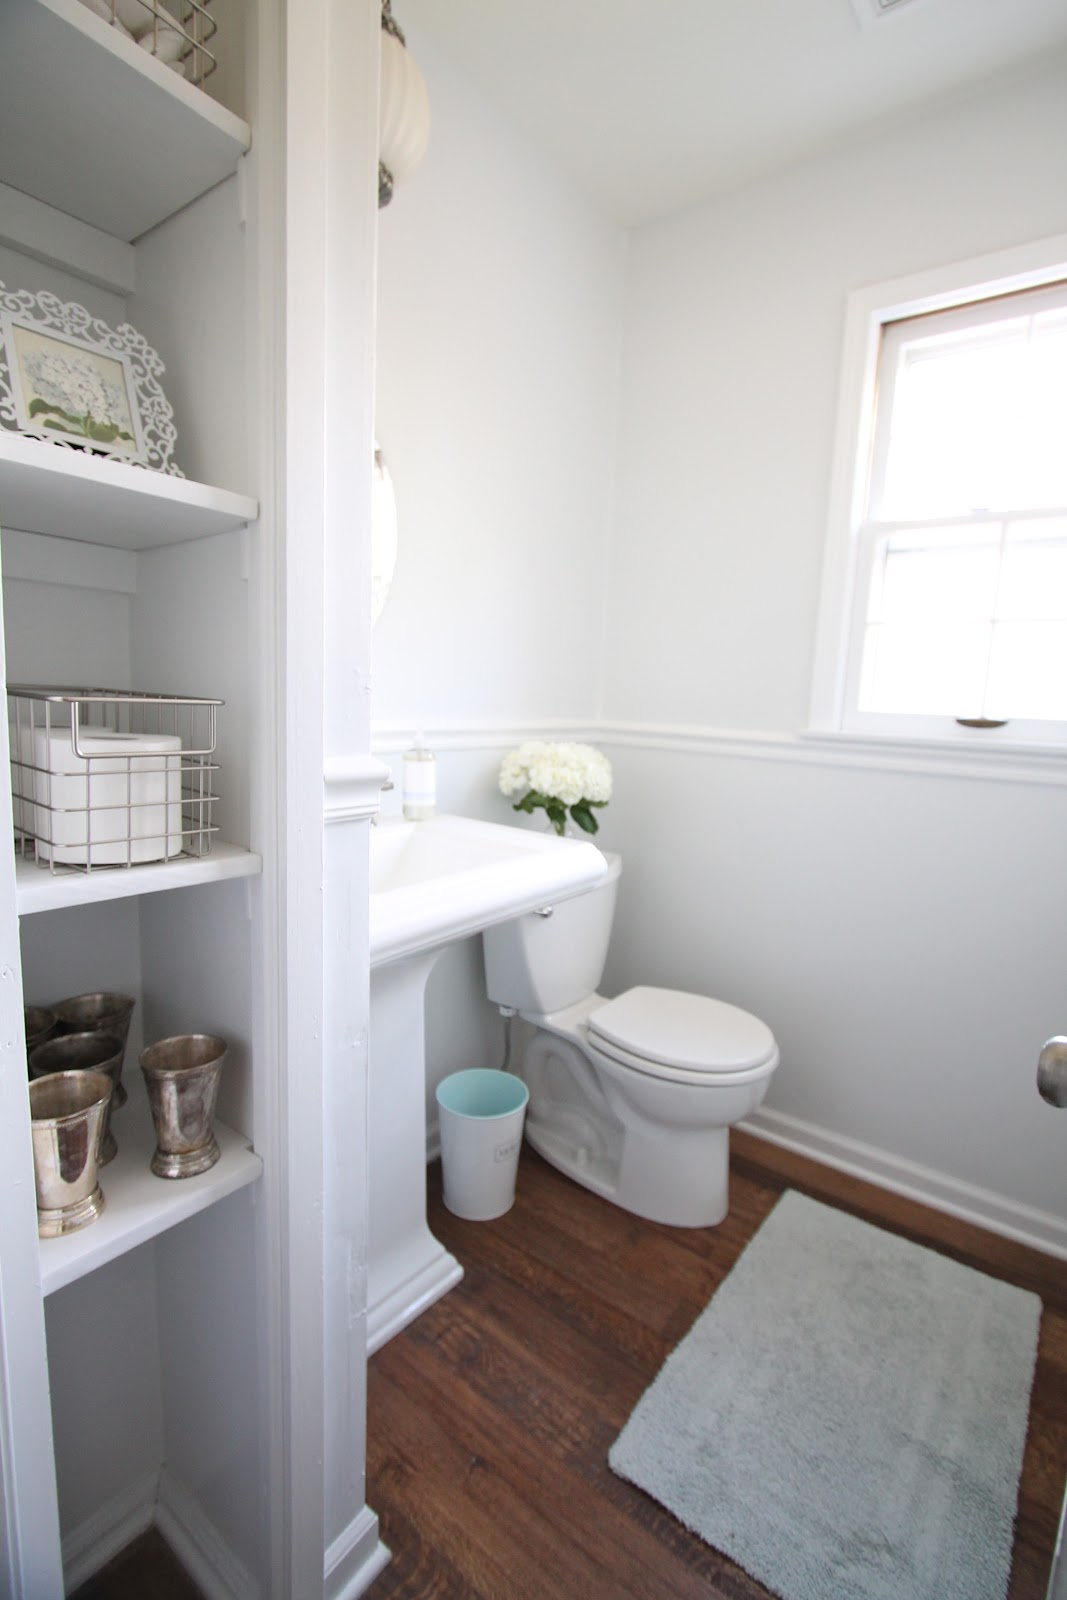 Bathroom Remodeling Do It Yourself diy bathroom remodel - julie blanner entertaining & home design